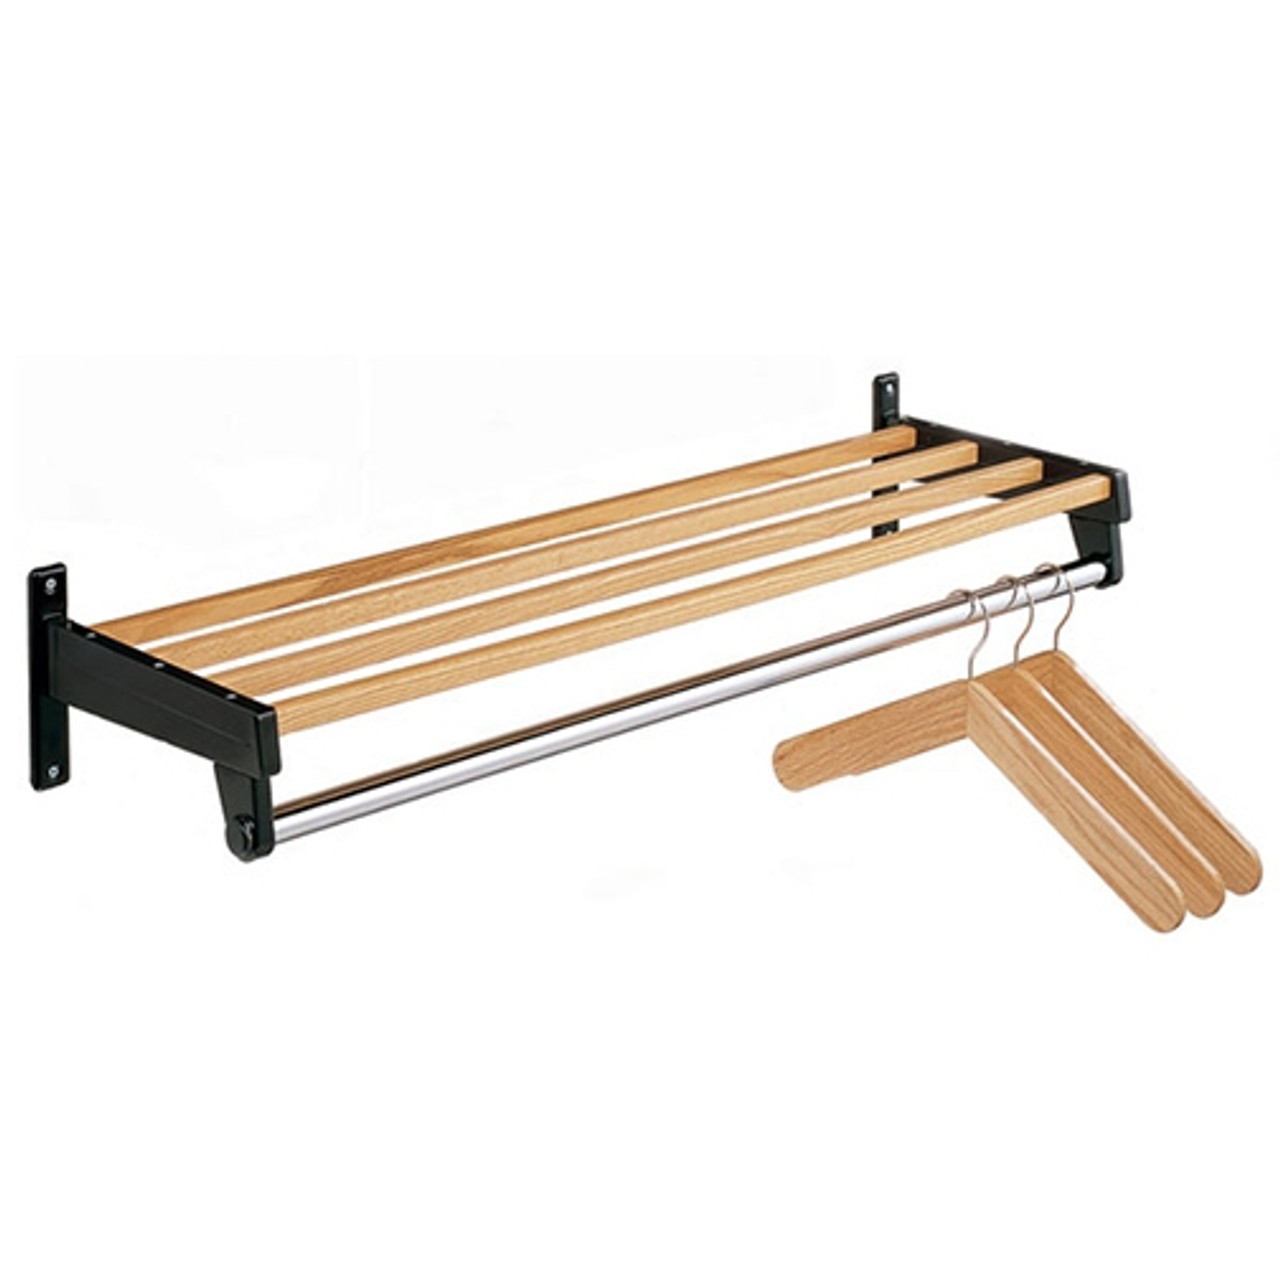 Wall Coat Racks - With Shelf - Wood